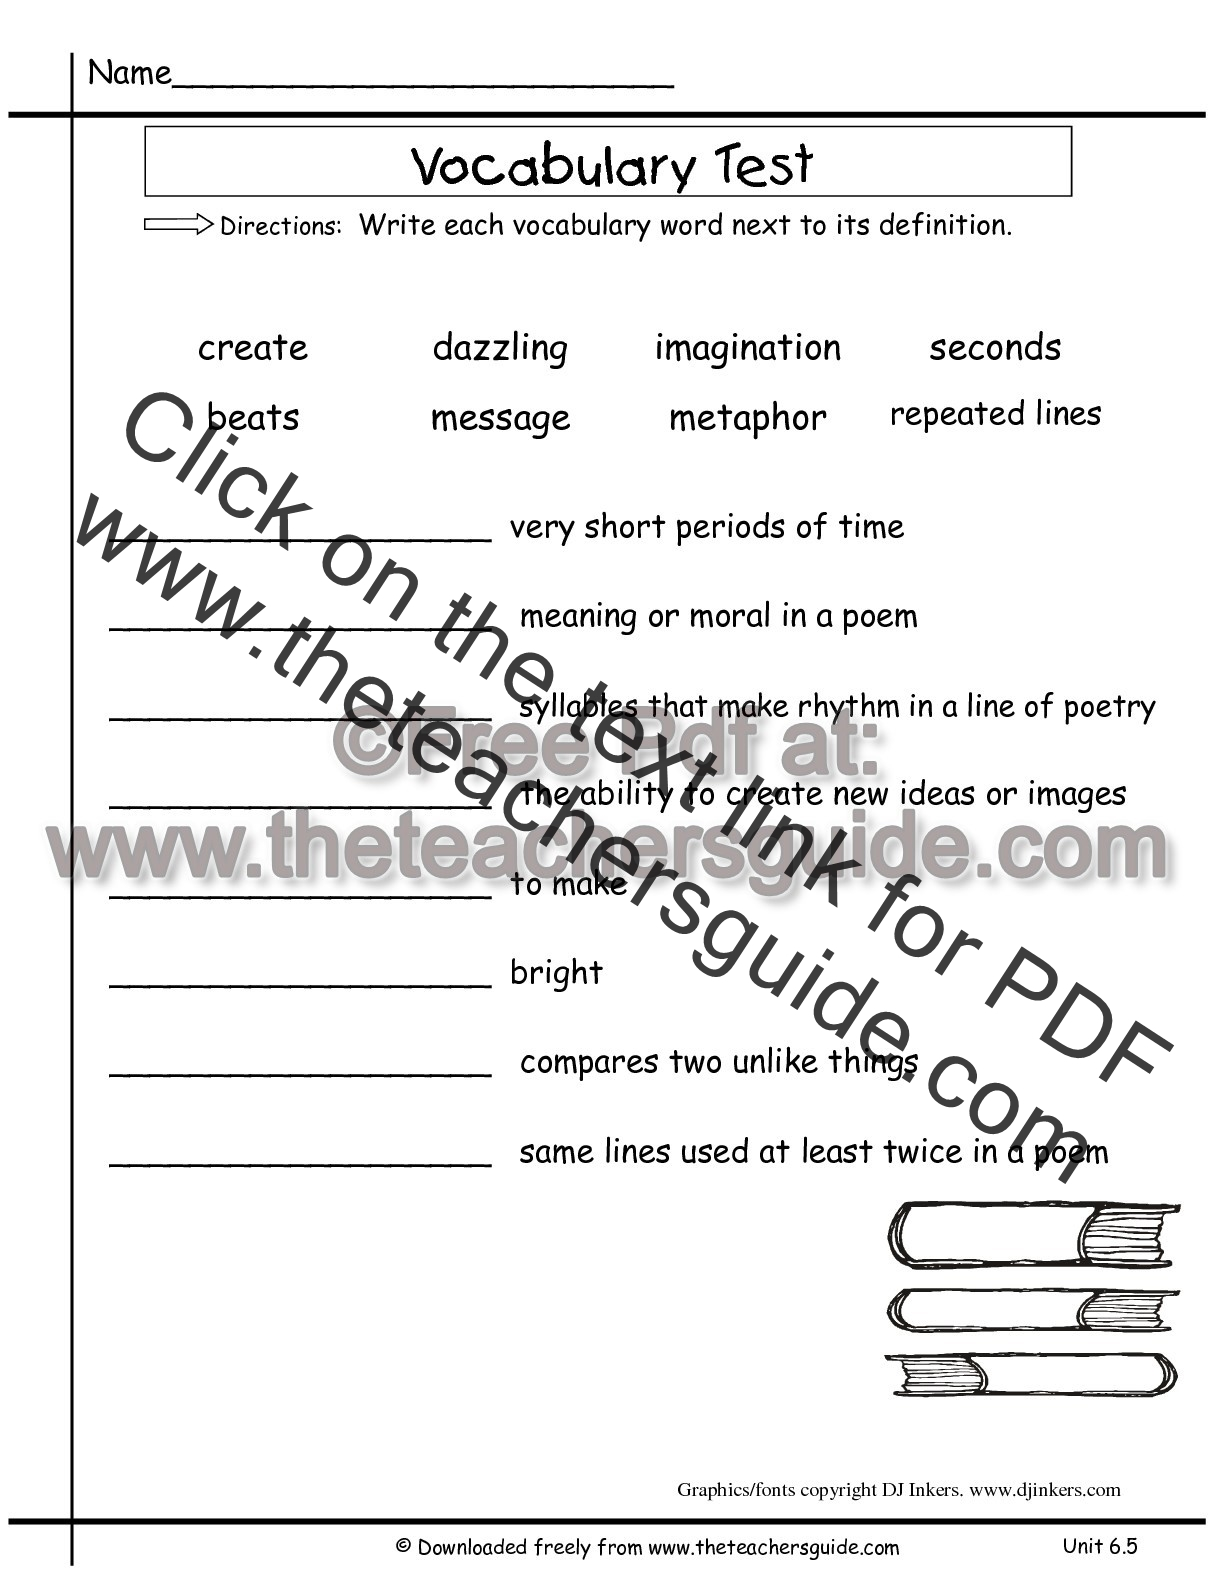 Second Grade Vocabulary Test Practice Worksheet Word Meaning Second Best Free Printable Worksheets